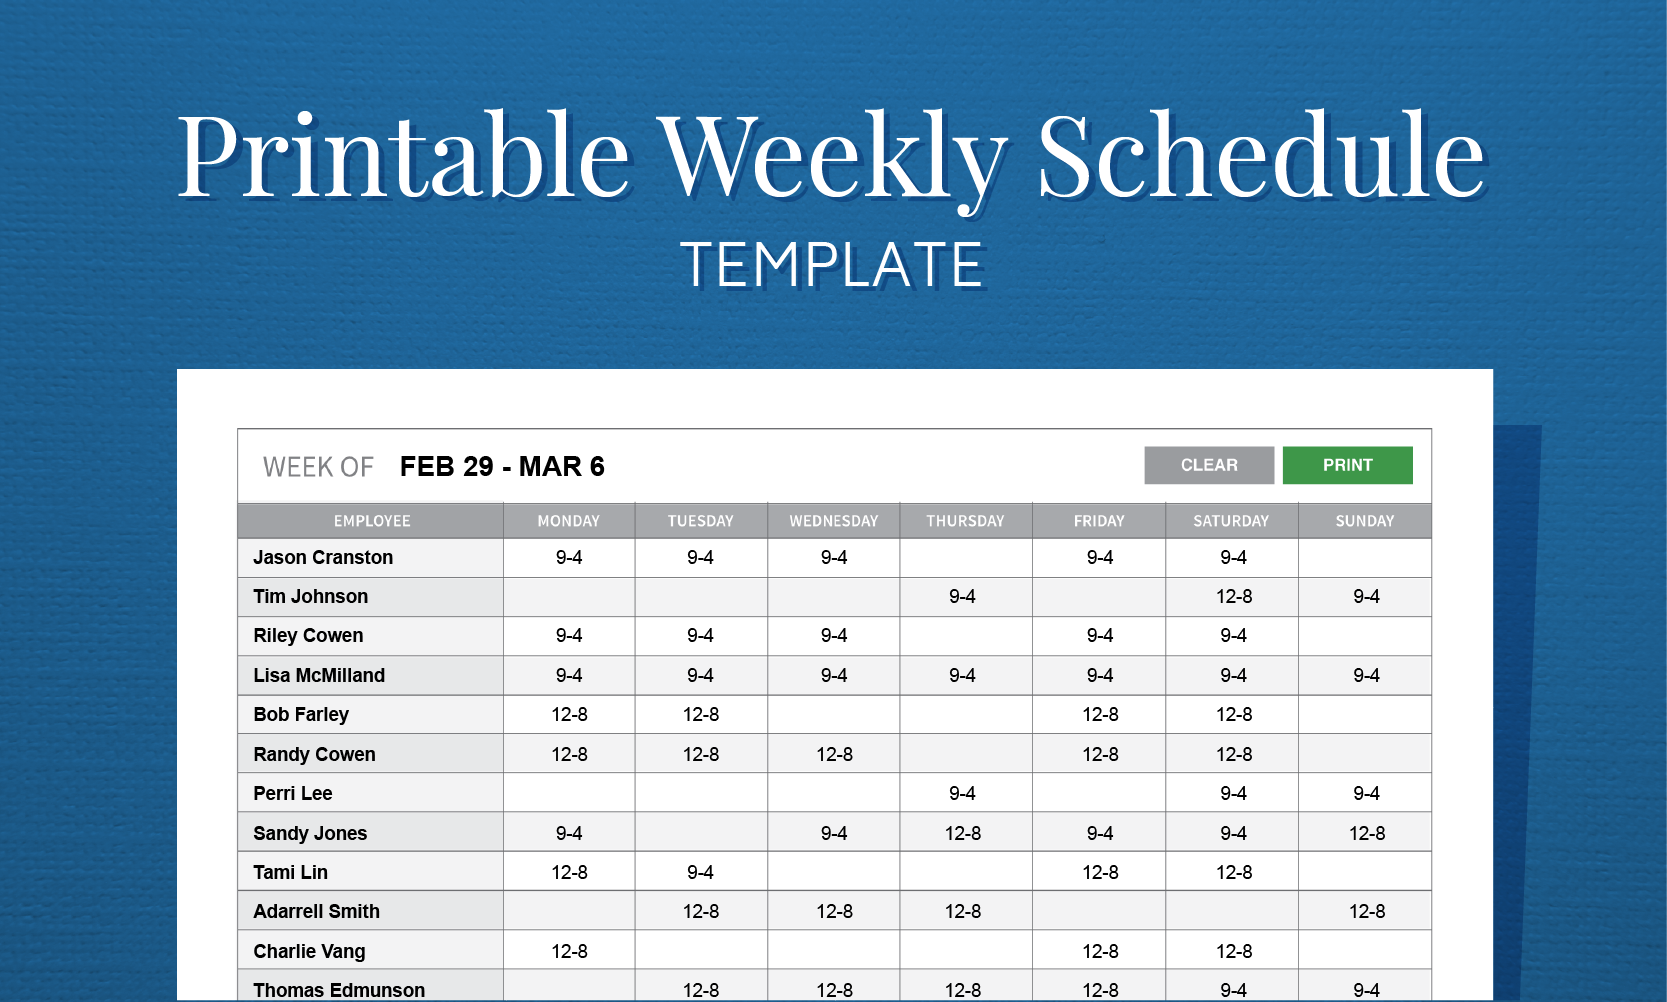 Free Employee Schedule Template Charlotte Clergy Coalition